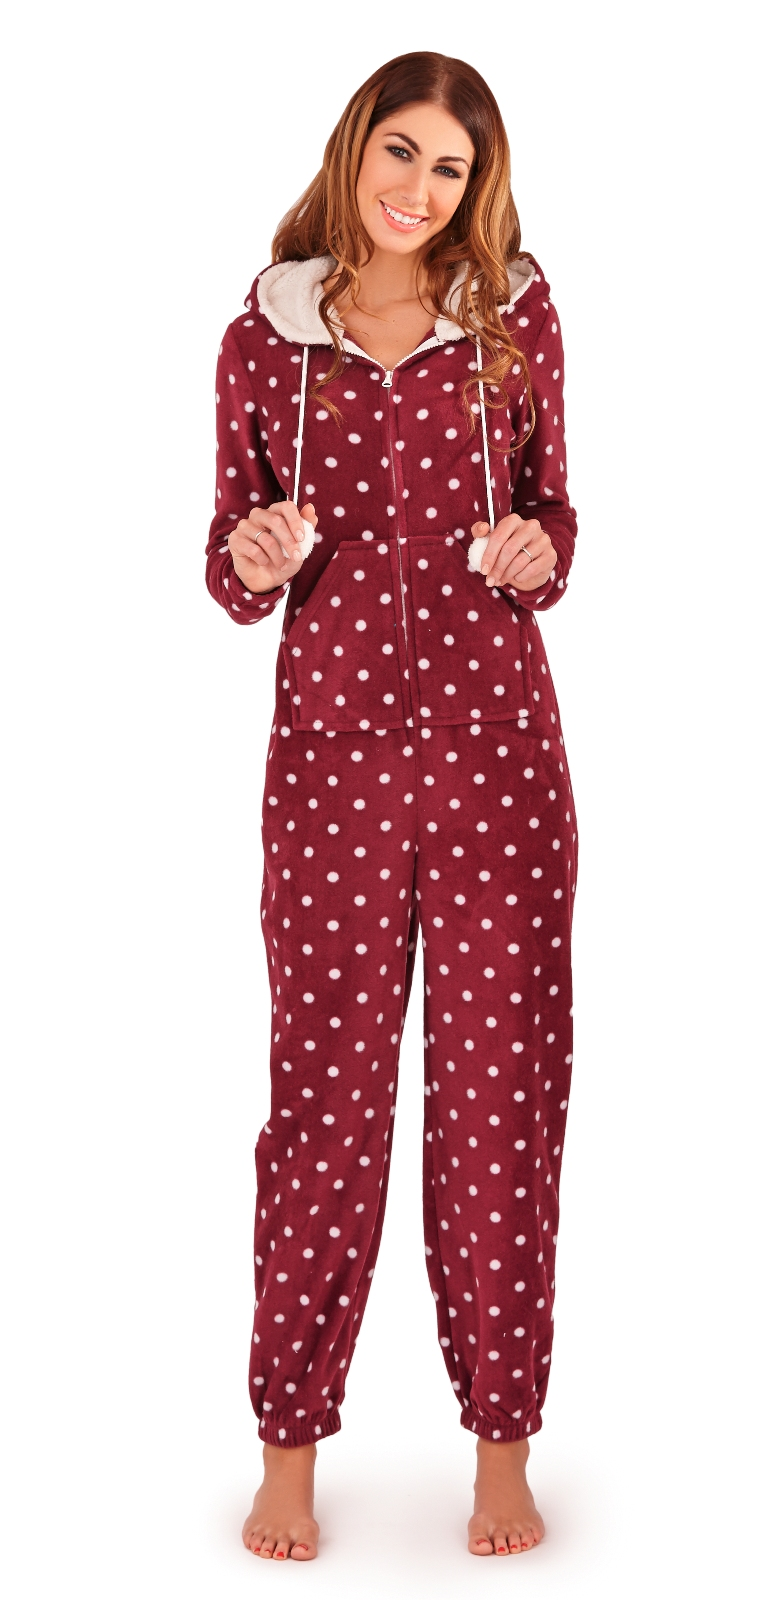 Women's Sleepwear. Women's Sleepwear. Wear dreamZzz come true. VISIT OUR SLEEP SHOP. 48 Products. Filter By (48 Results) Done. Santa Jack Skellington and Friends Holiday Pajamas for Women by Munki Munki. Santa Jack Skellington and Friends Holiday Pajamas for Women by Munki Munki. $